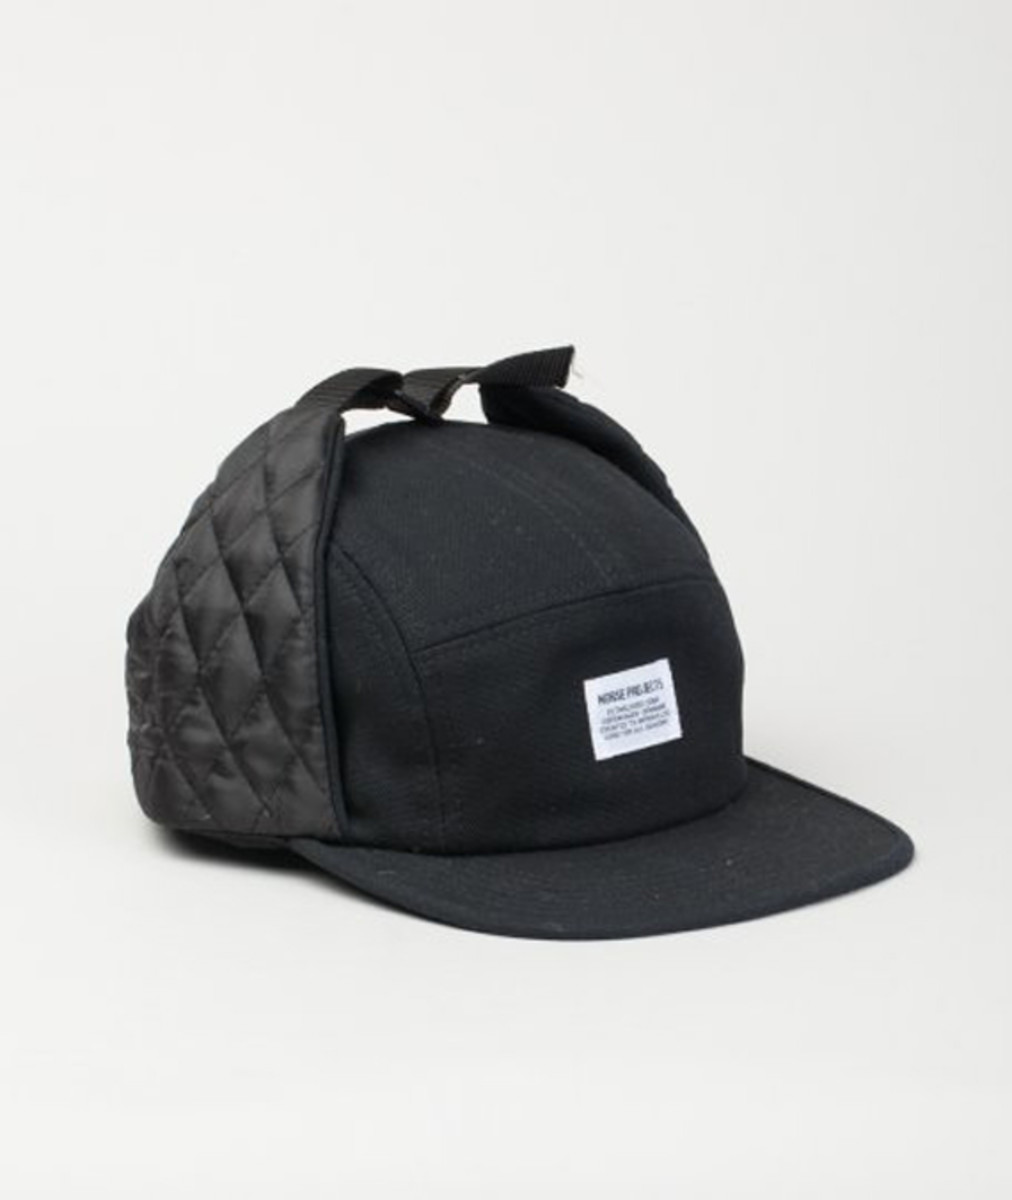 norse-projects-earflap-duck-canvas-cap-01